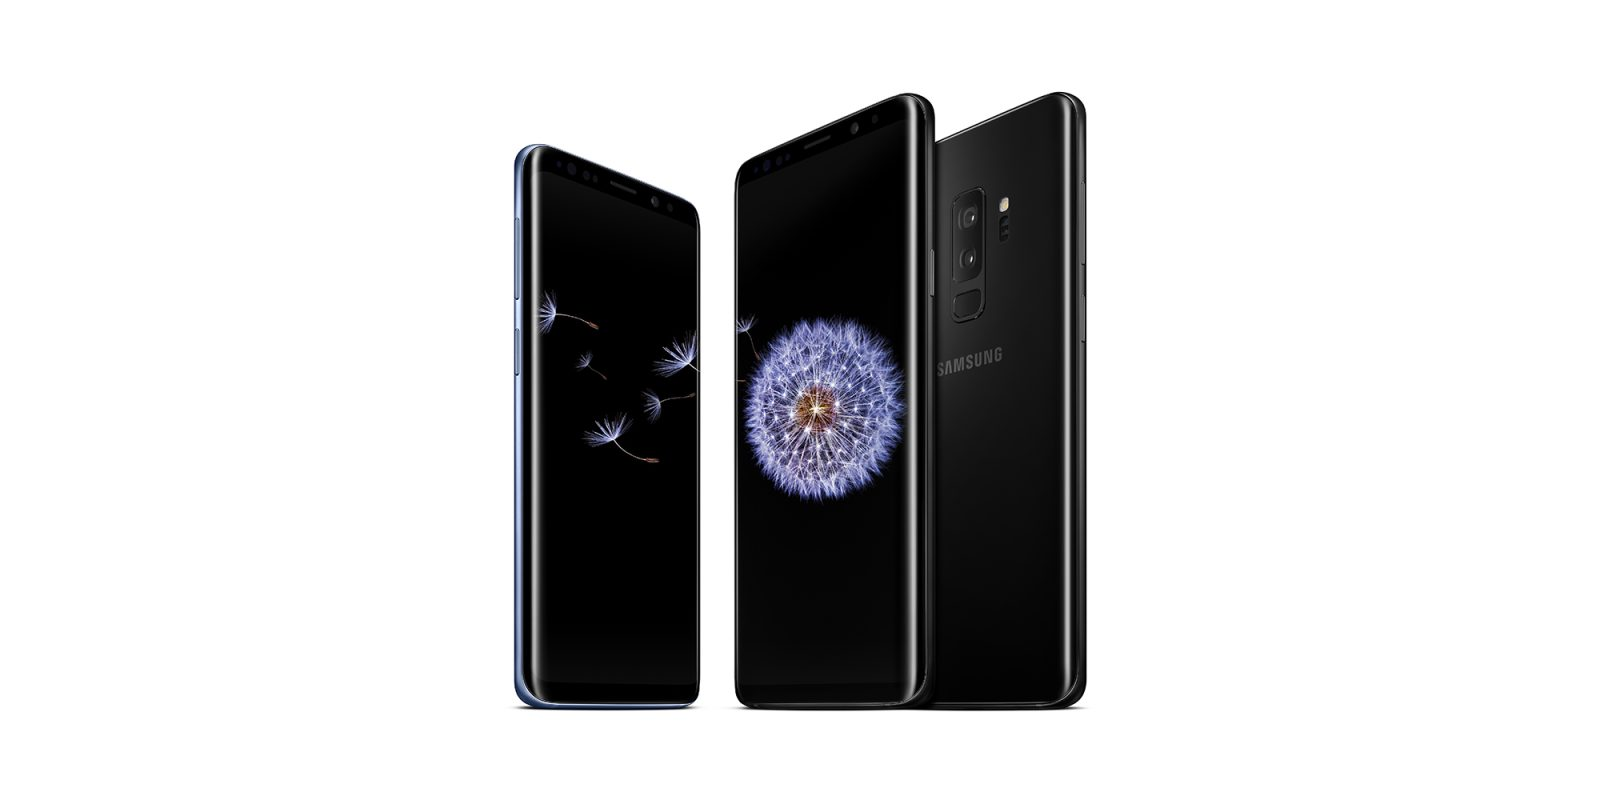 How to take a screenshot on the Samsung Galaxy S9 & S9+